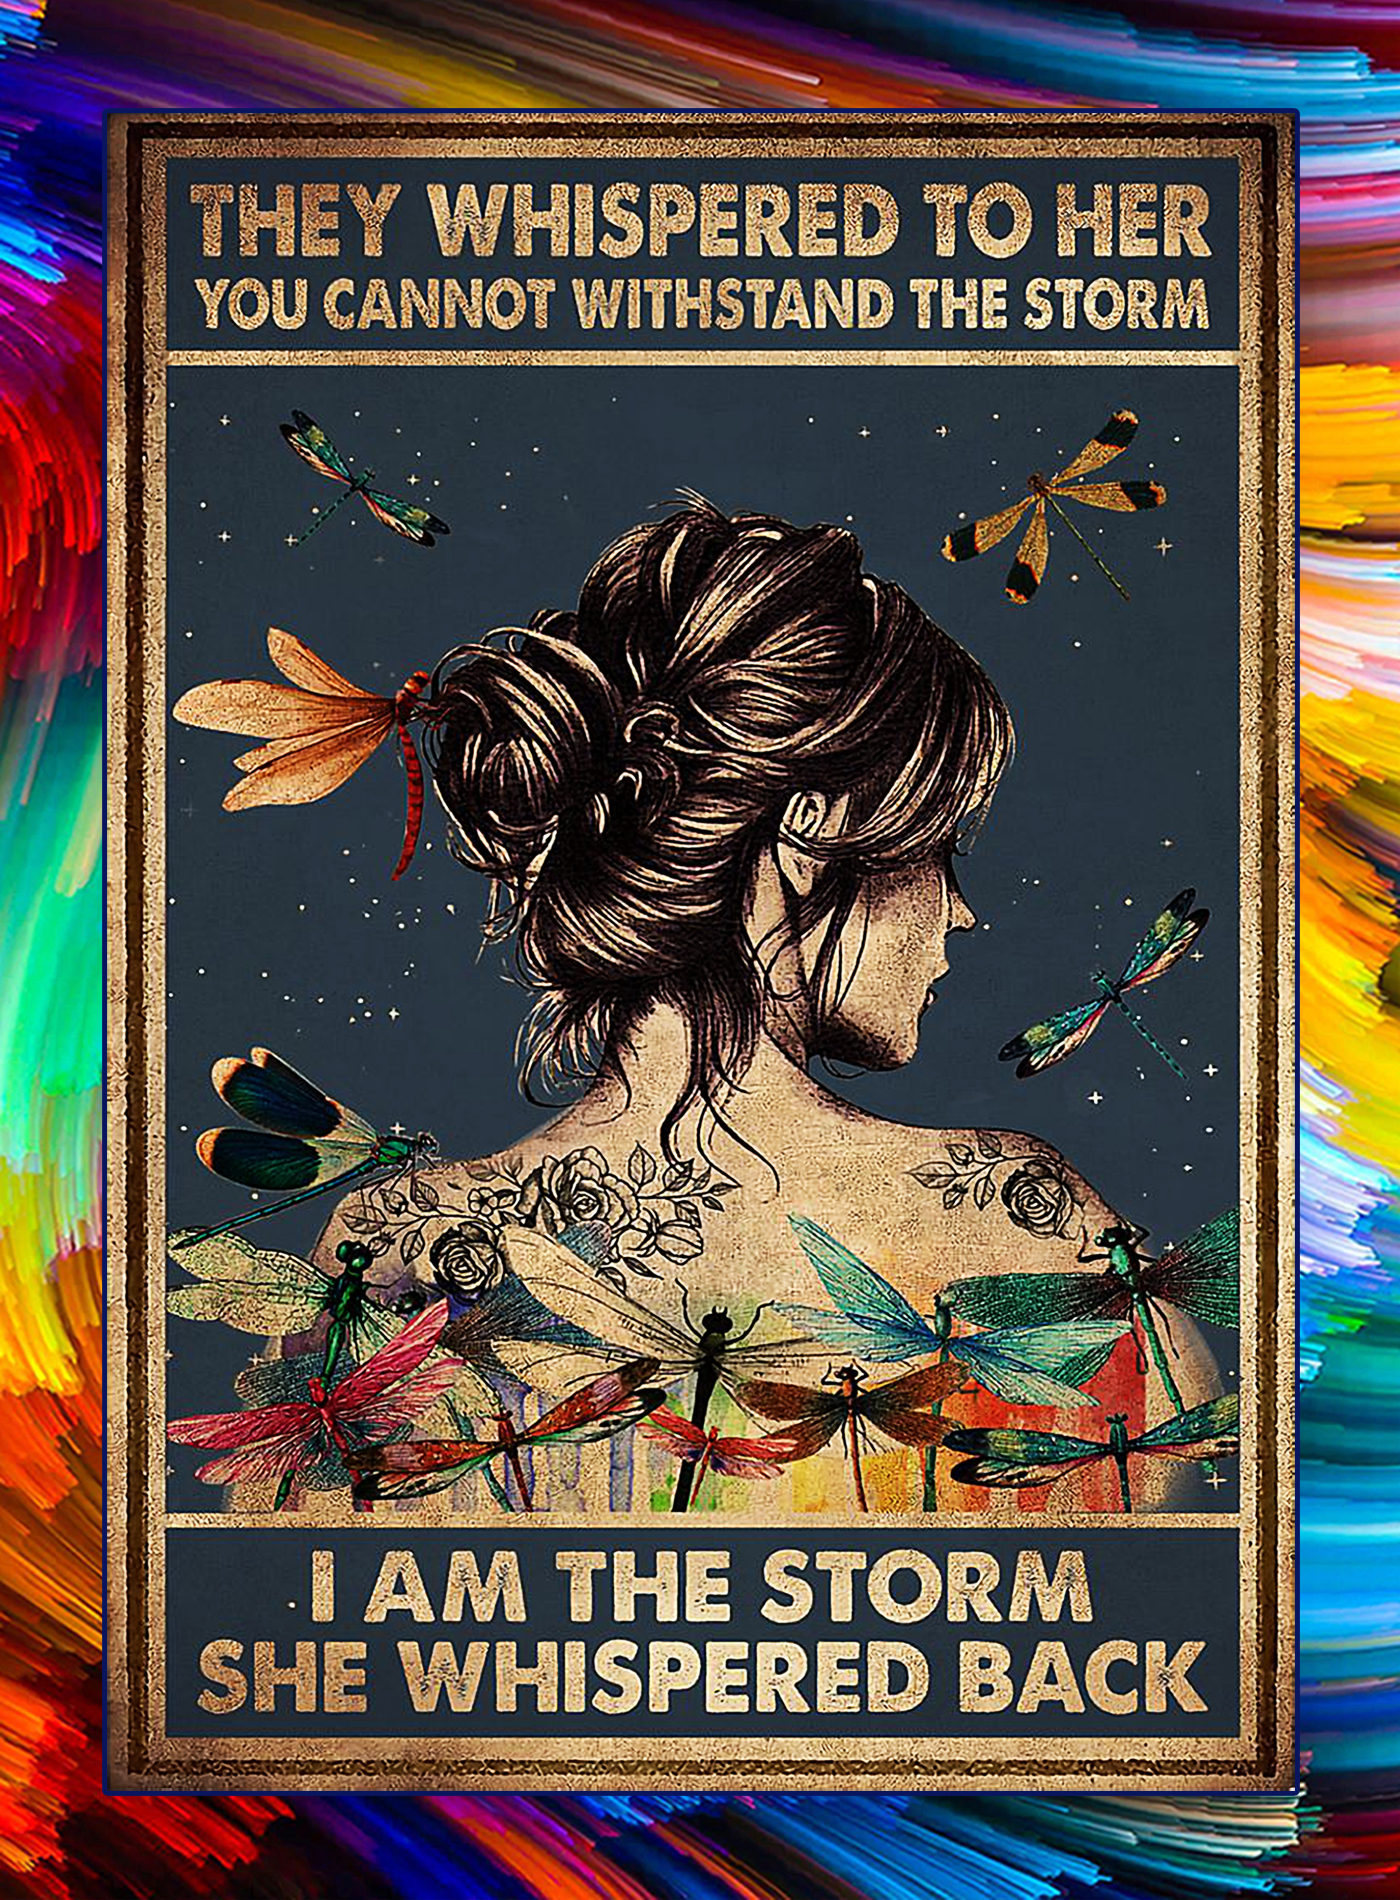 Dragonfly girl they whispered to her you can not withstand the storm poster - A1